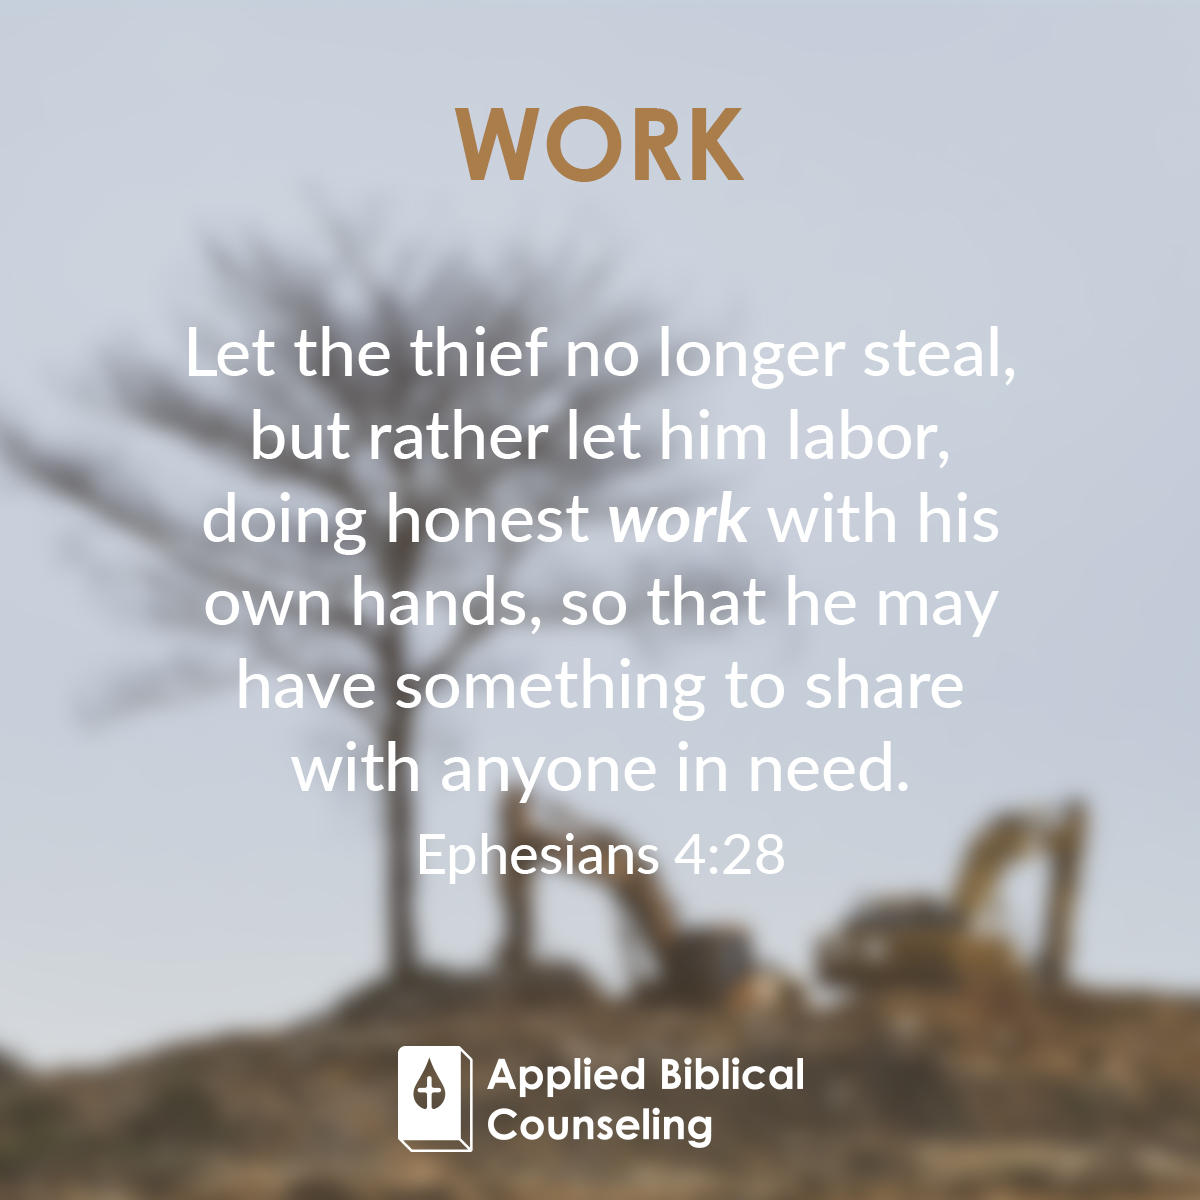 Applied Biblical Counseling Facebook w24 Work 5